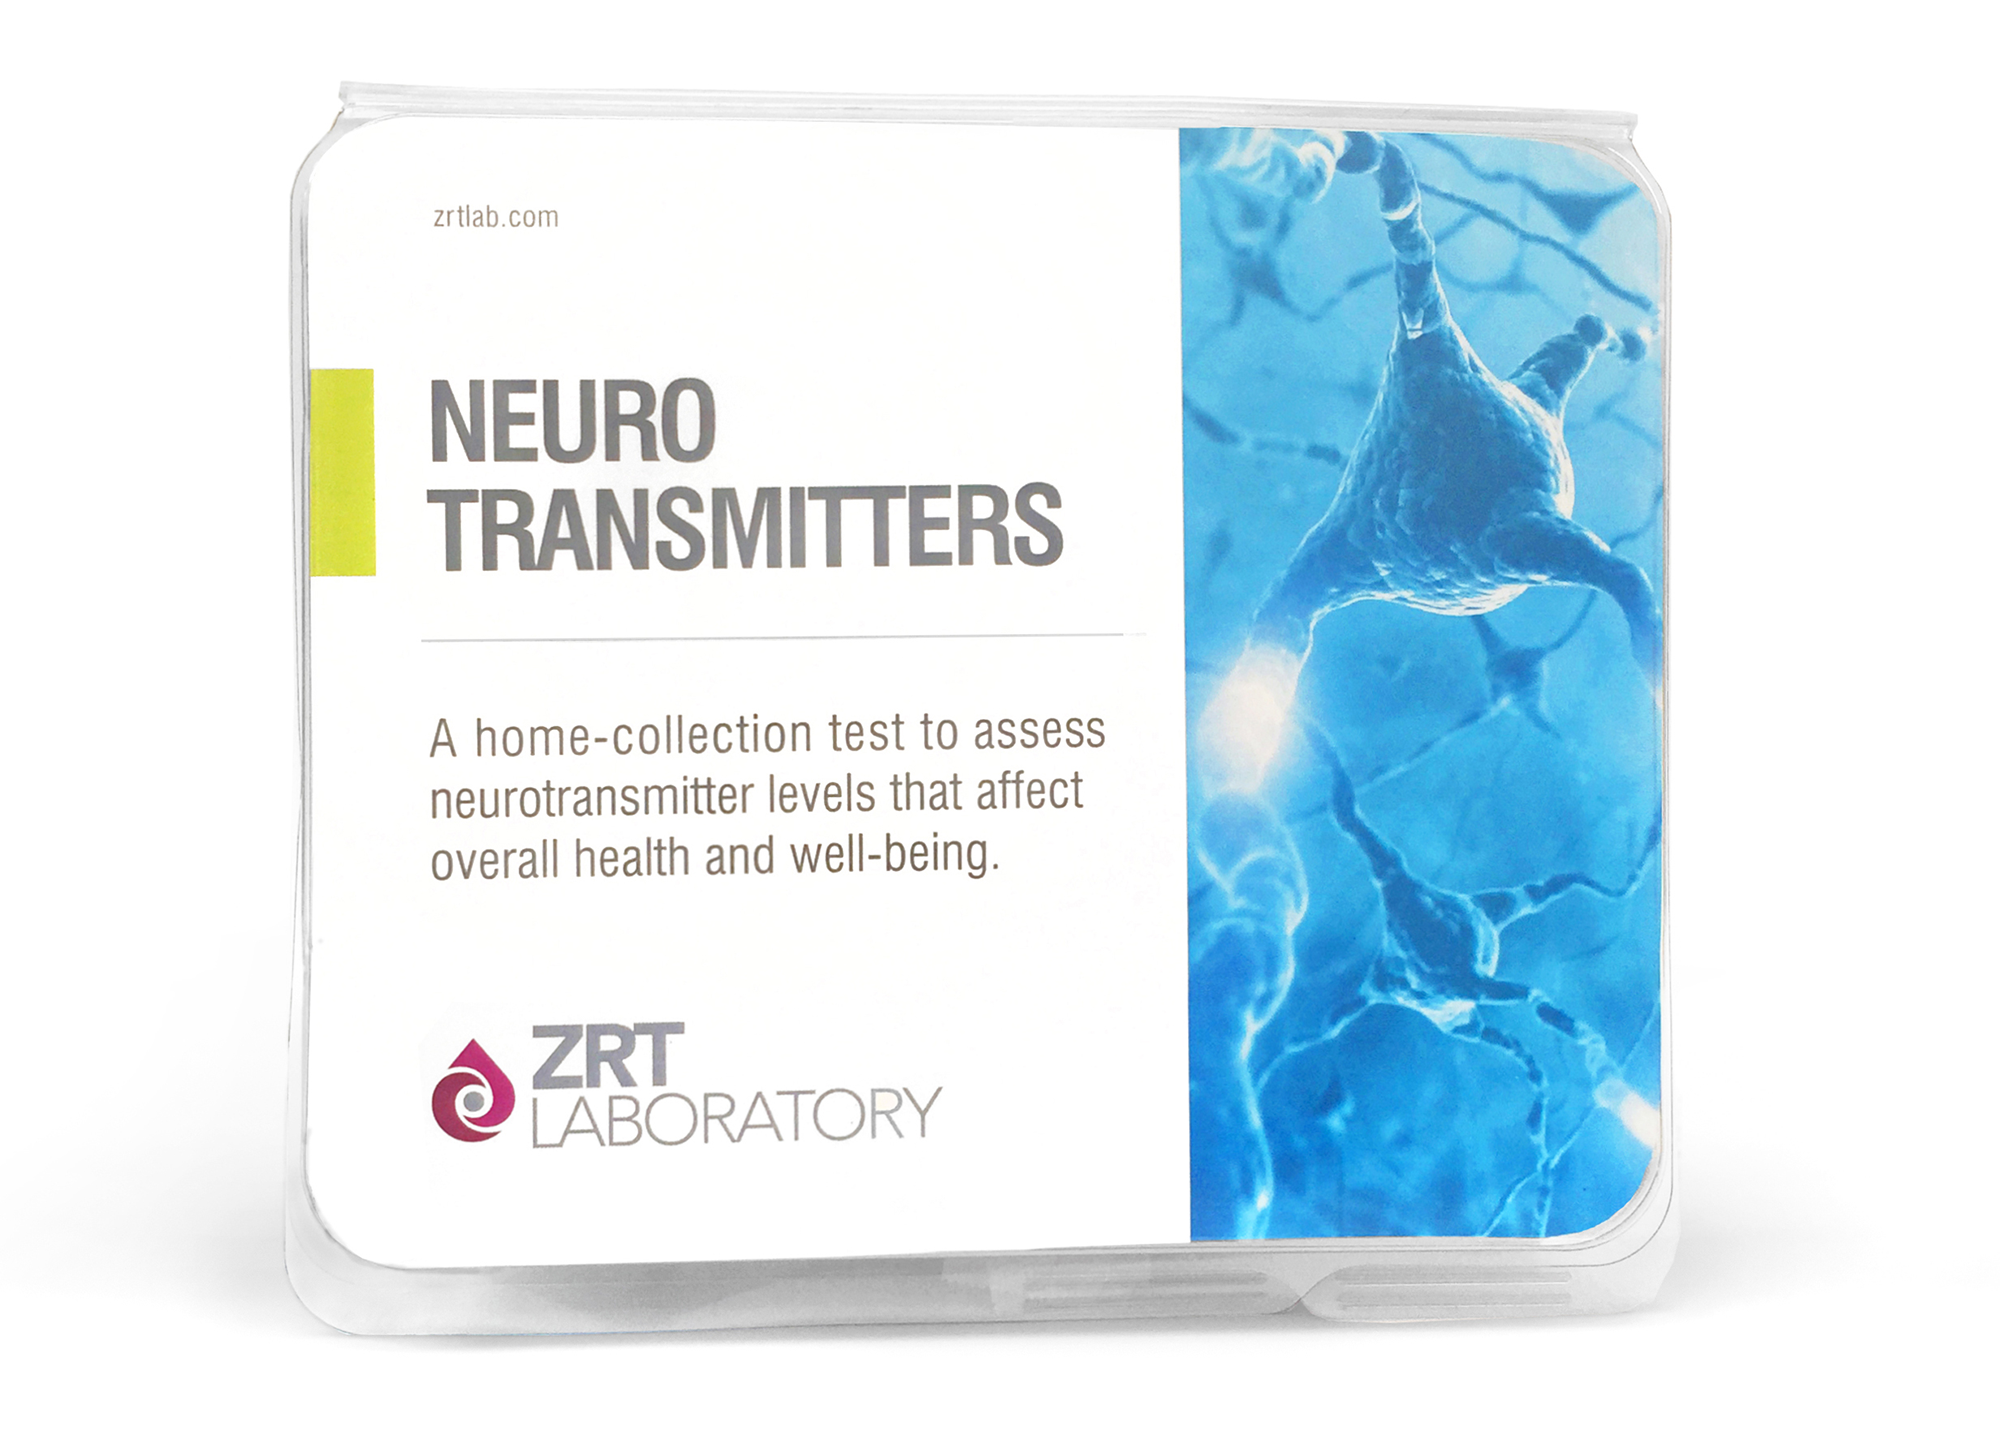 ZRT Laboratory Neurotransmitters Kit